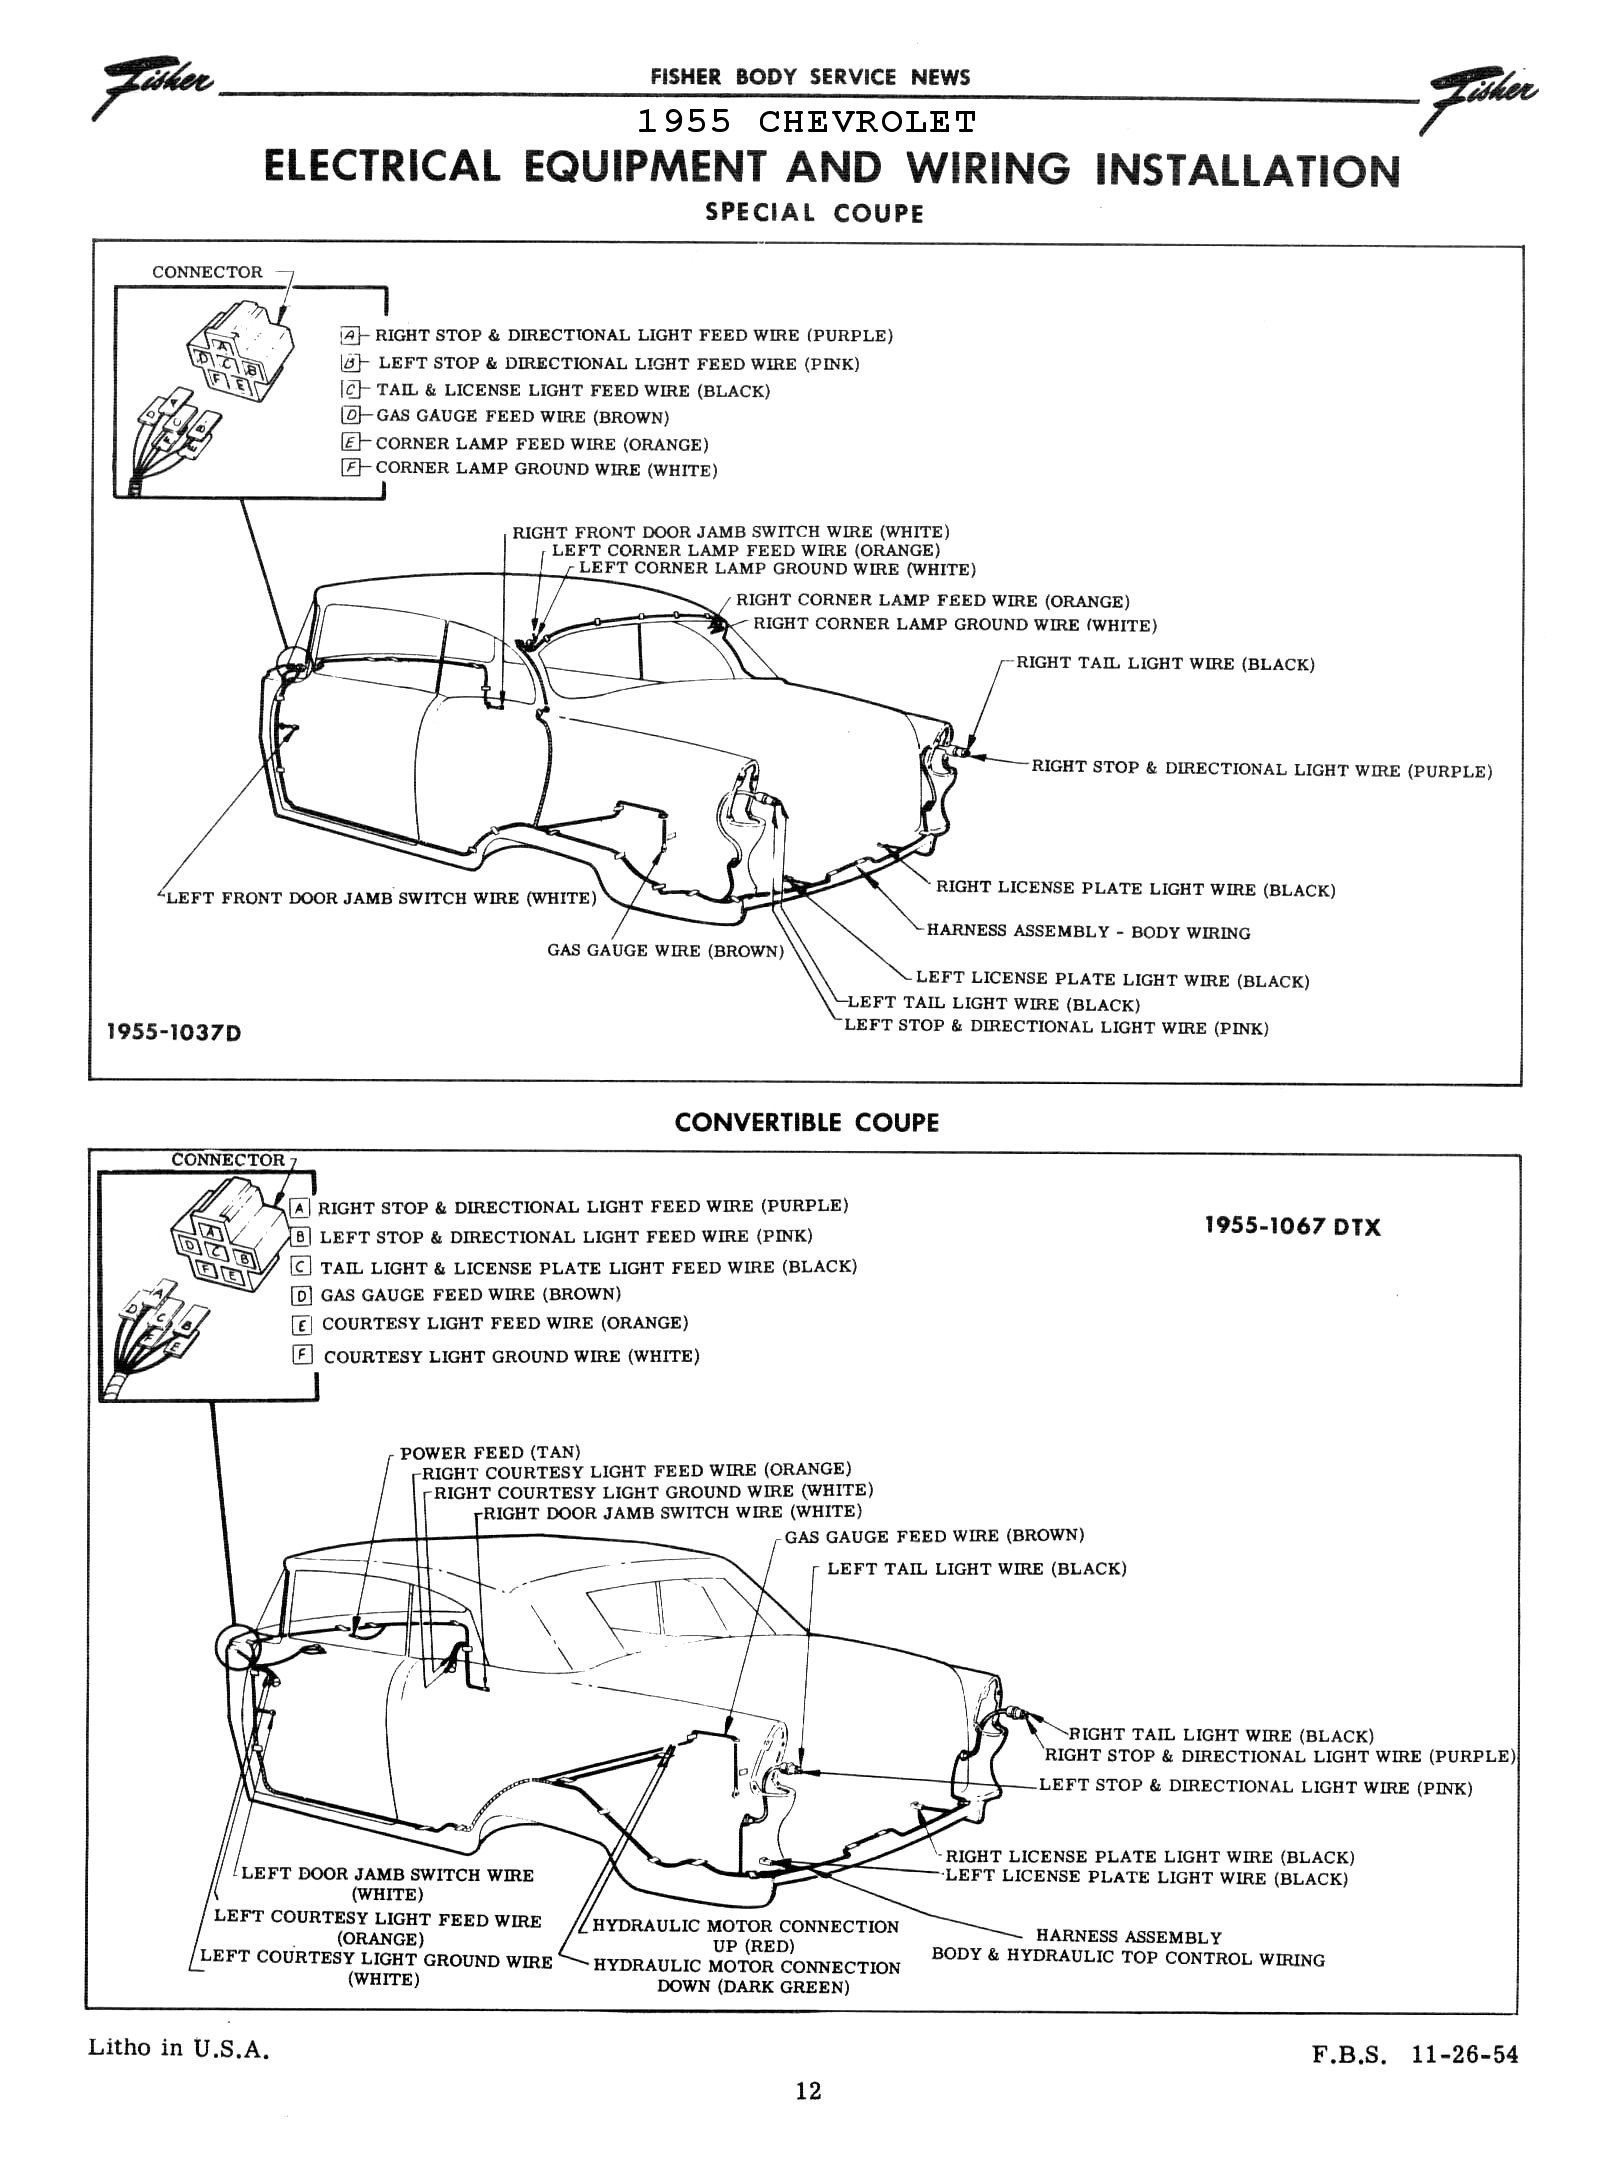 diagram] wiring diagram for 55 chevy full version hd quality 55 chevy -  structurepvctas.borgocontessa.it  structurepvctas.borgocontessa.it